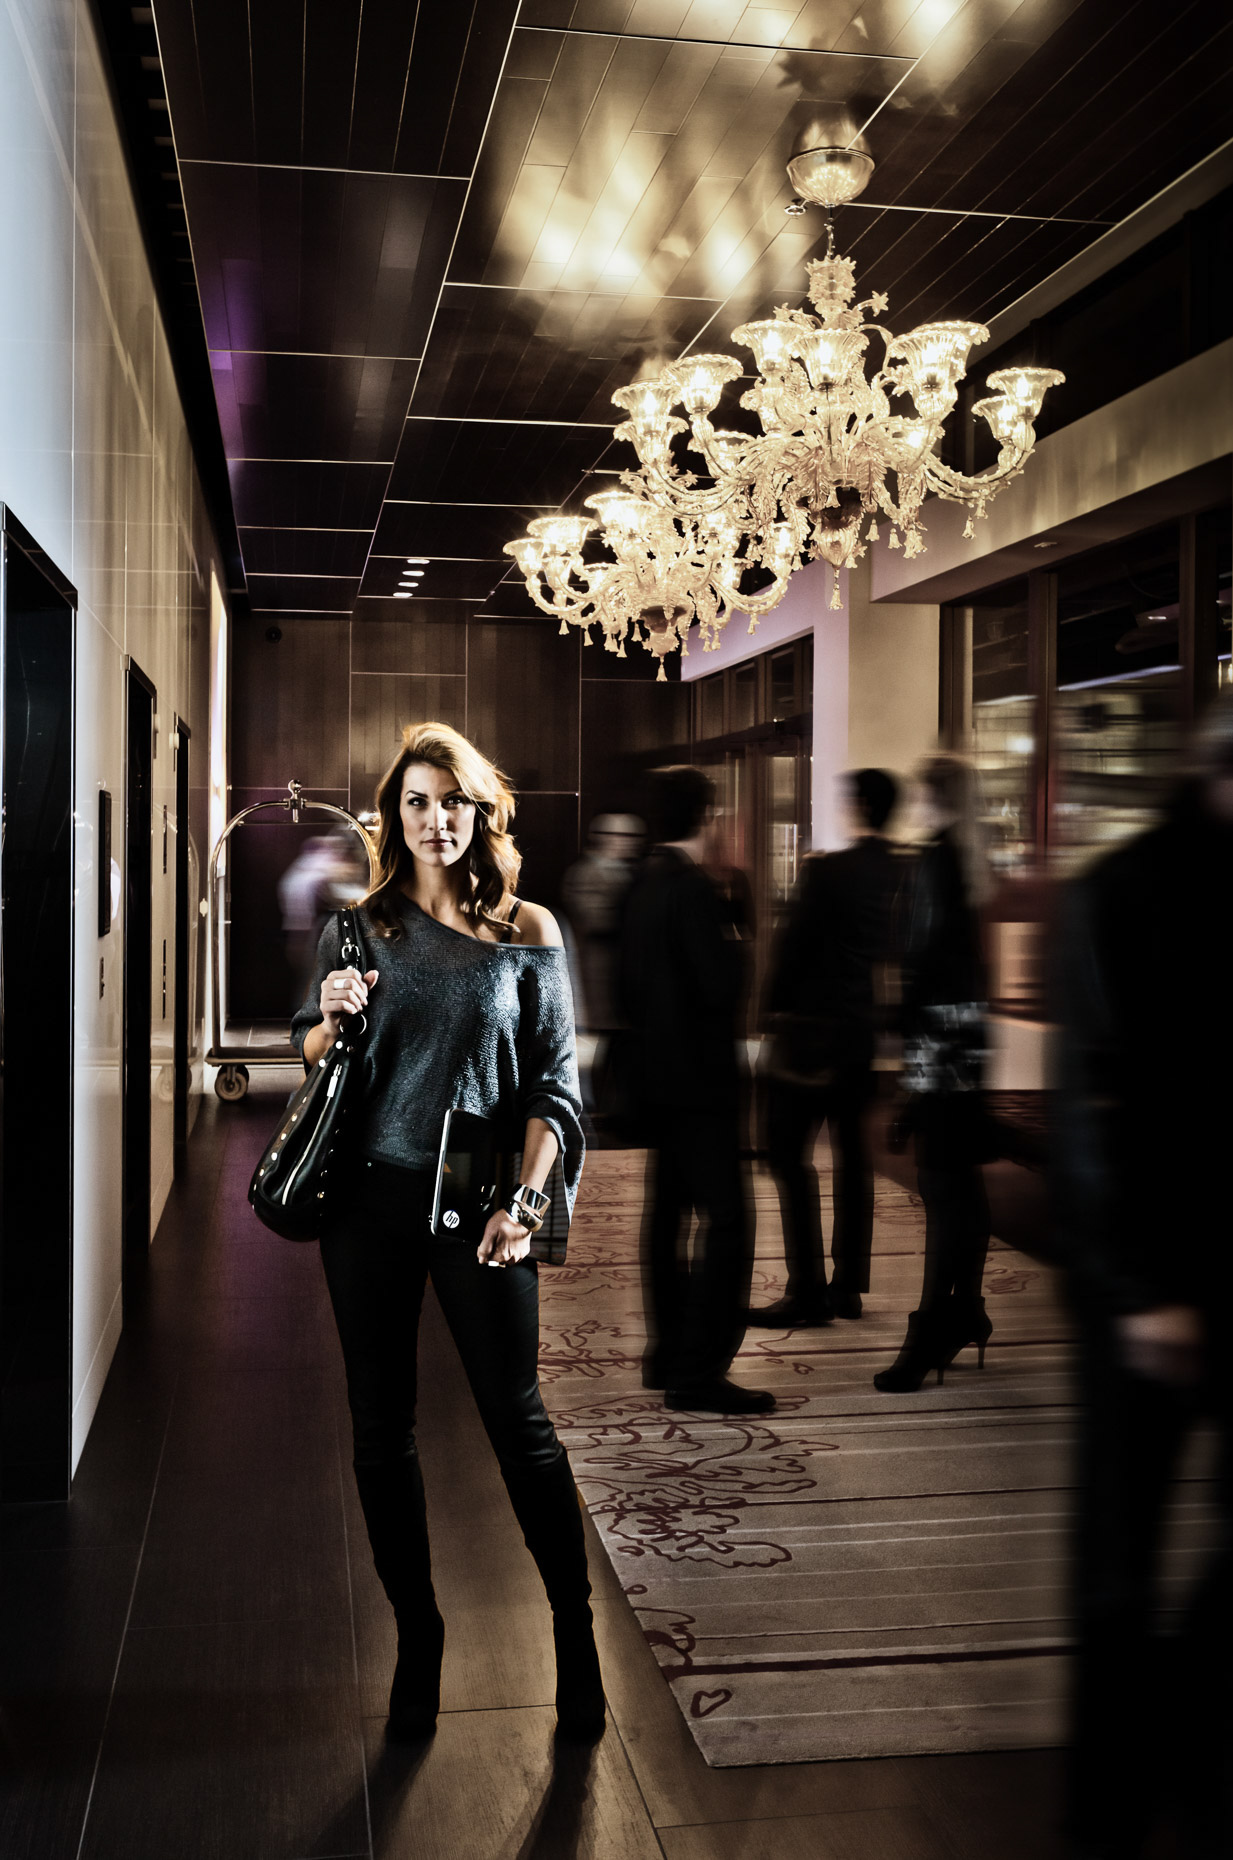 Portland model Tina Kraft for HP Spectre laptop campaign in The Nines Hotel  by Andy Batt.